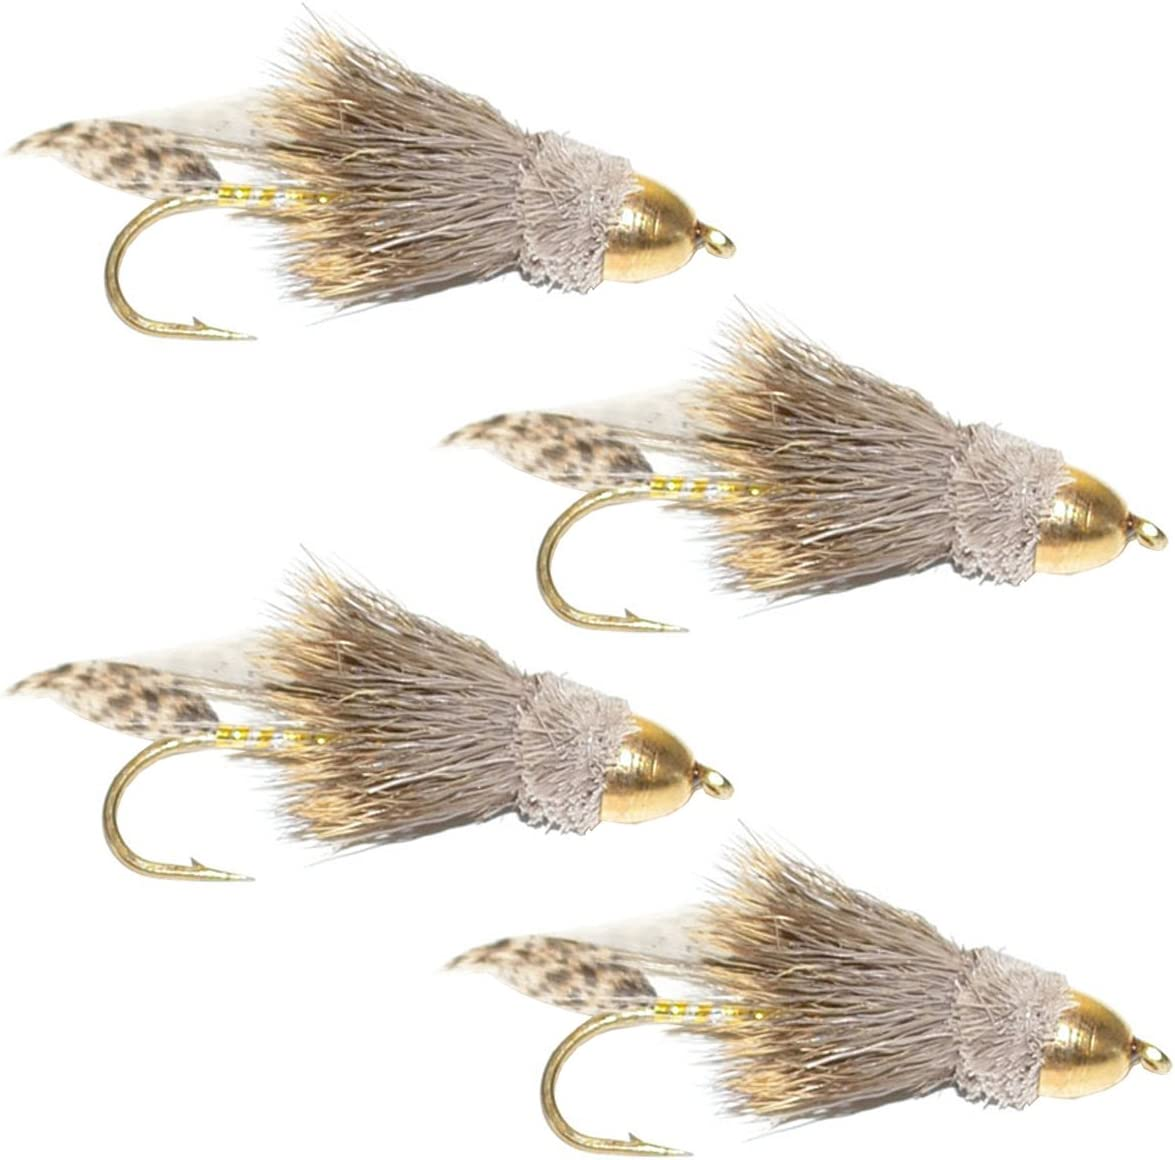 The Cheap bargain Fly Fishing New Shipping Free Shipping Place Cone Head Minnow Flies Muddler